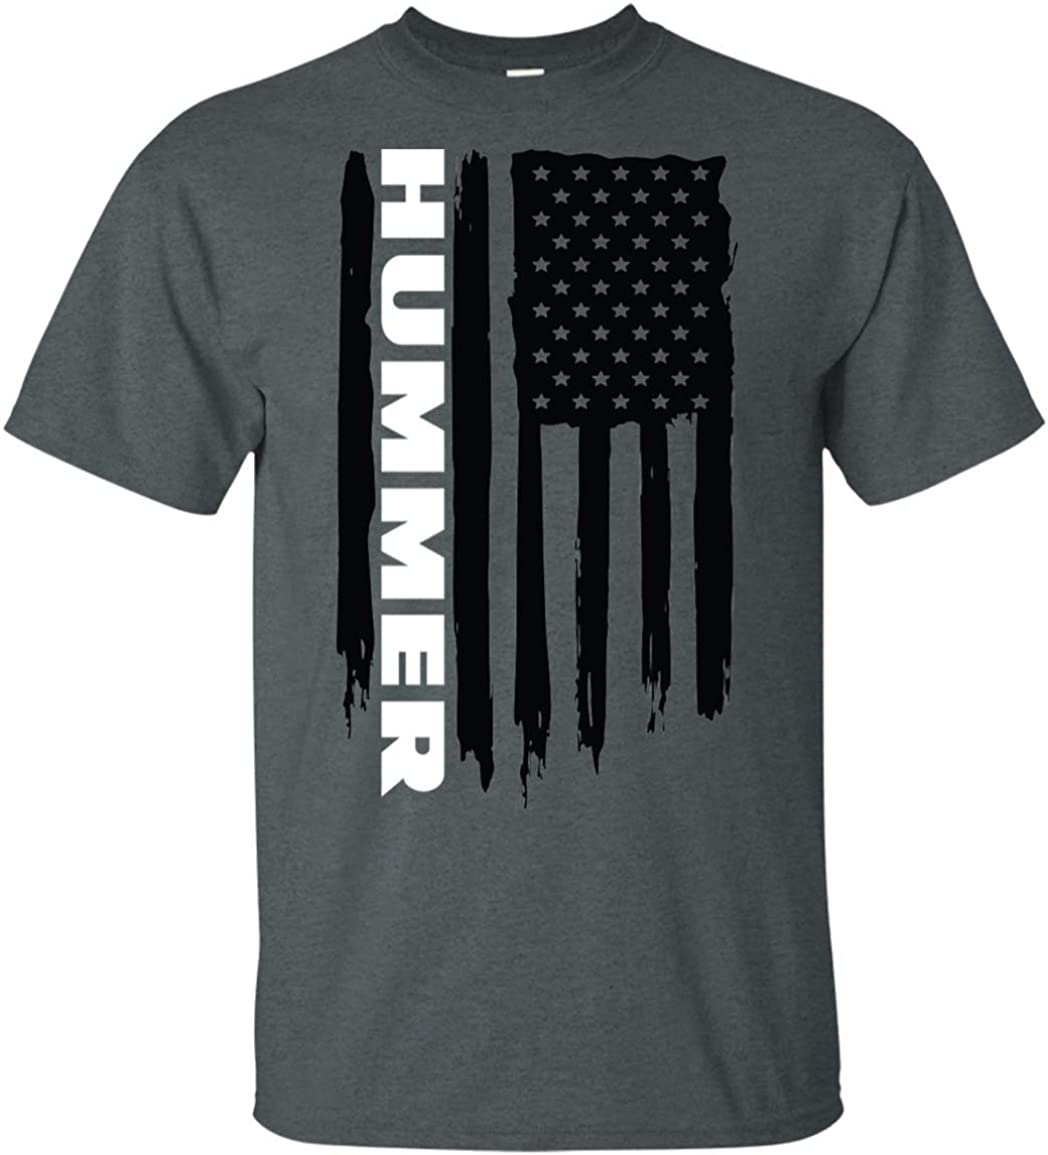 Free shipping on posting reviews WheelSpinAddict Men's Hummer H1 H2 Sale SALE% OFF T-Shirt USA Flag H3